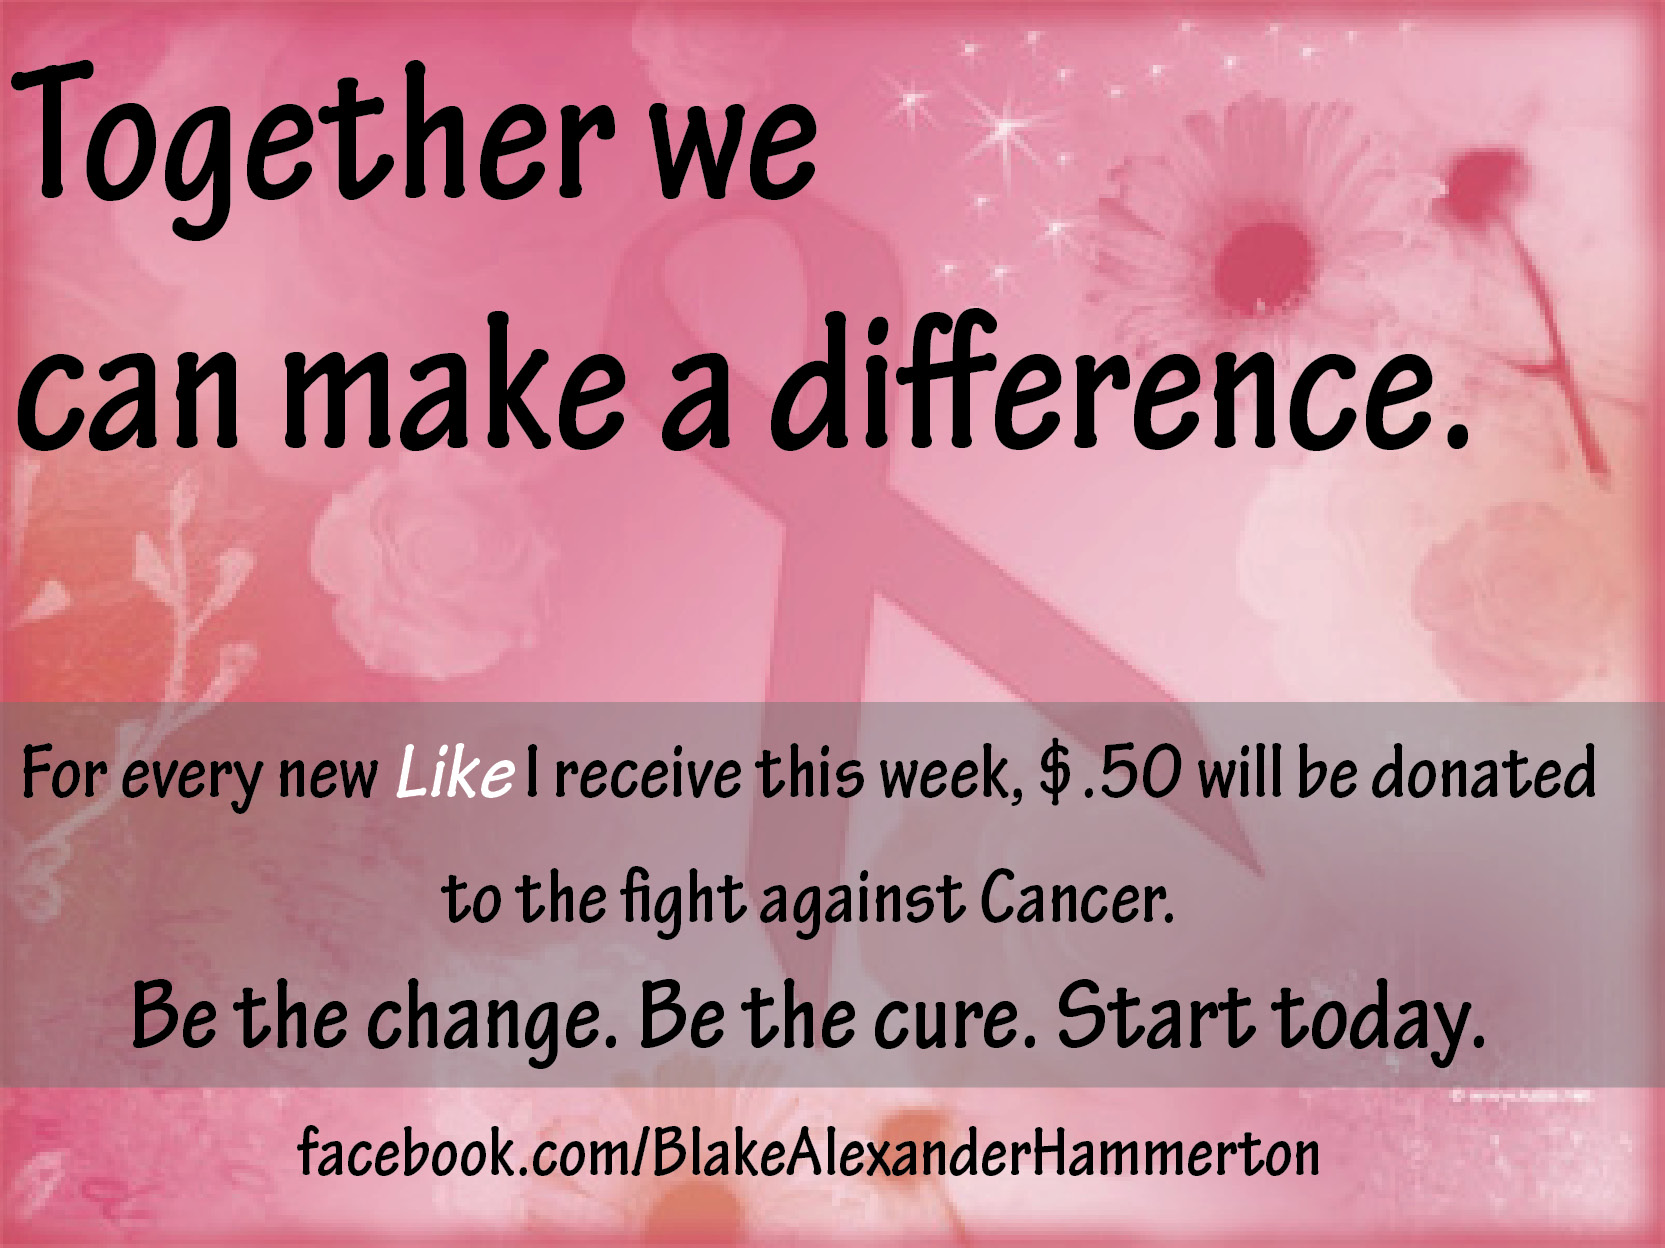 Click and like the page to be counted toward the donation goal!